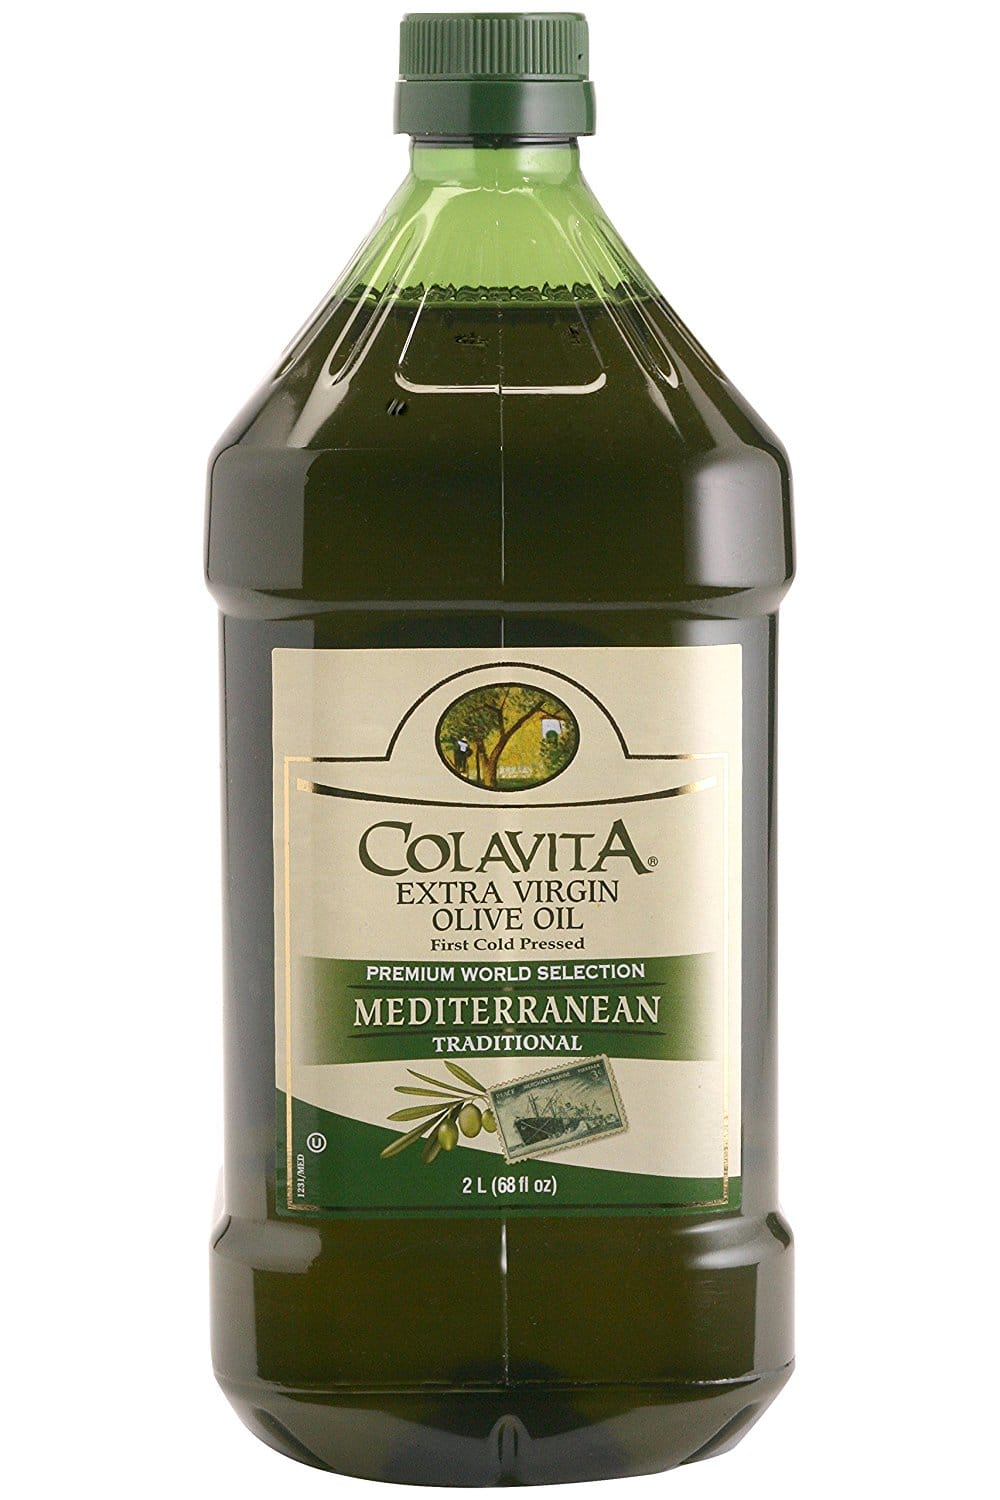 Colavita Mediterranean Extra Virgin Olive Oil [68 Ounce] - As low as $12.30